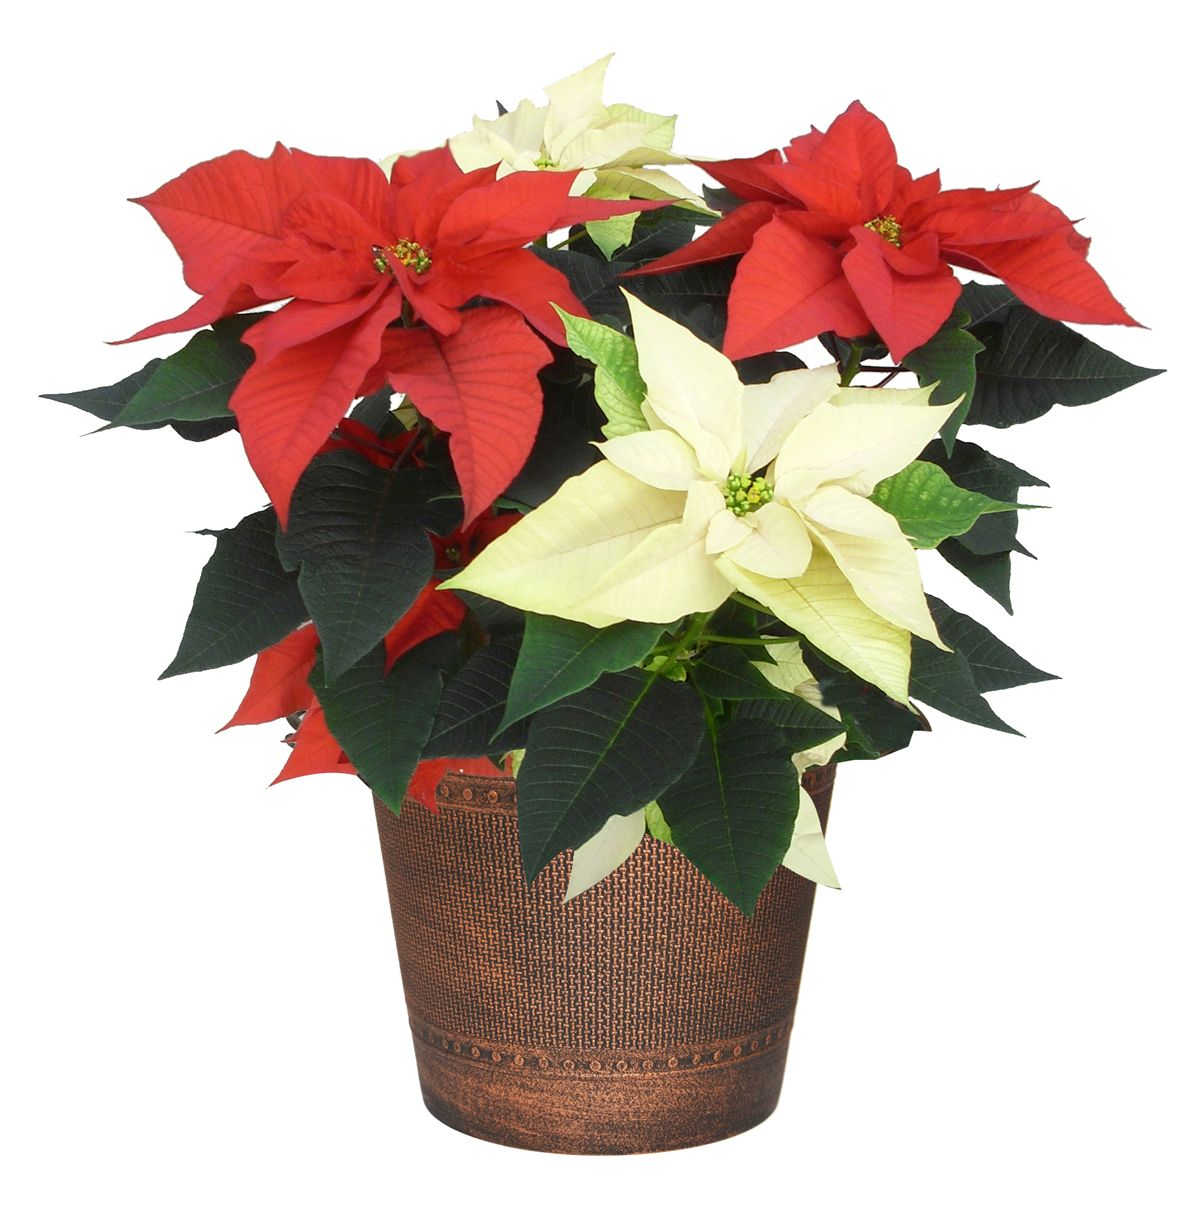 Here Are Some Tips To Help You Keep Your Poinsettias In Top Shape